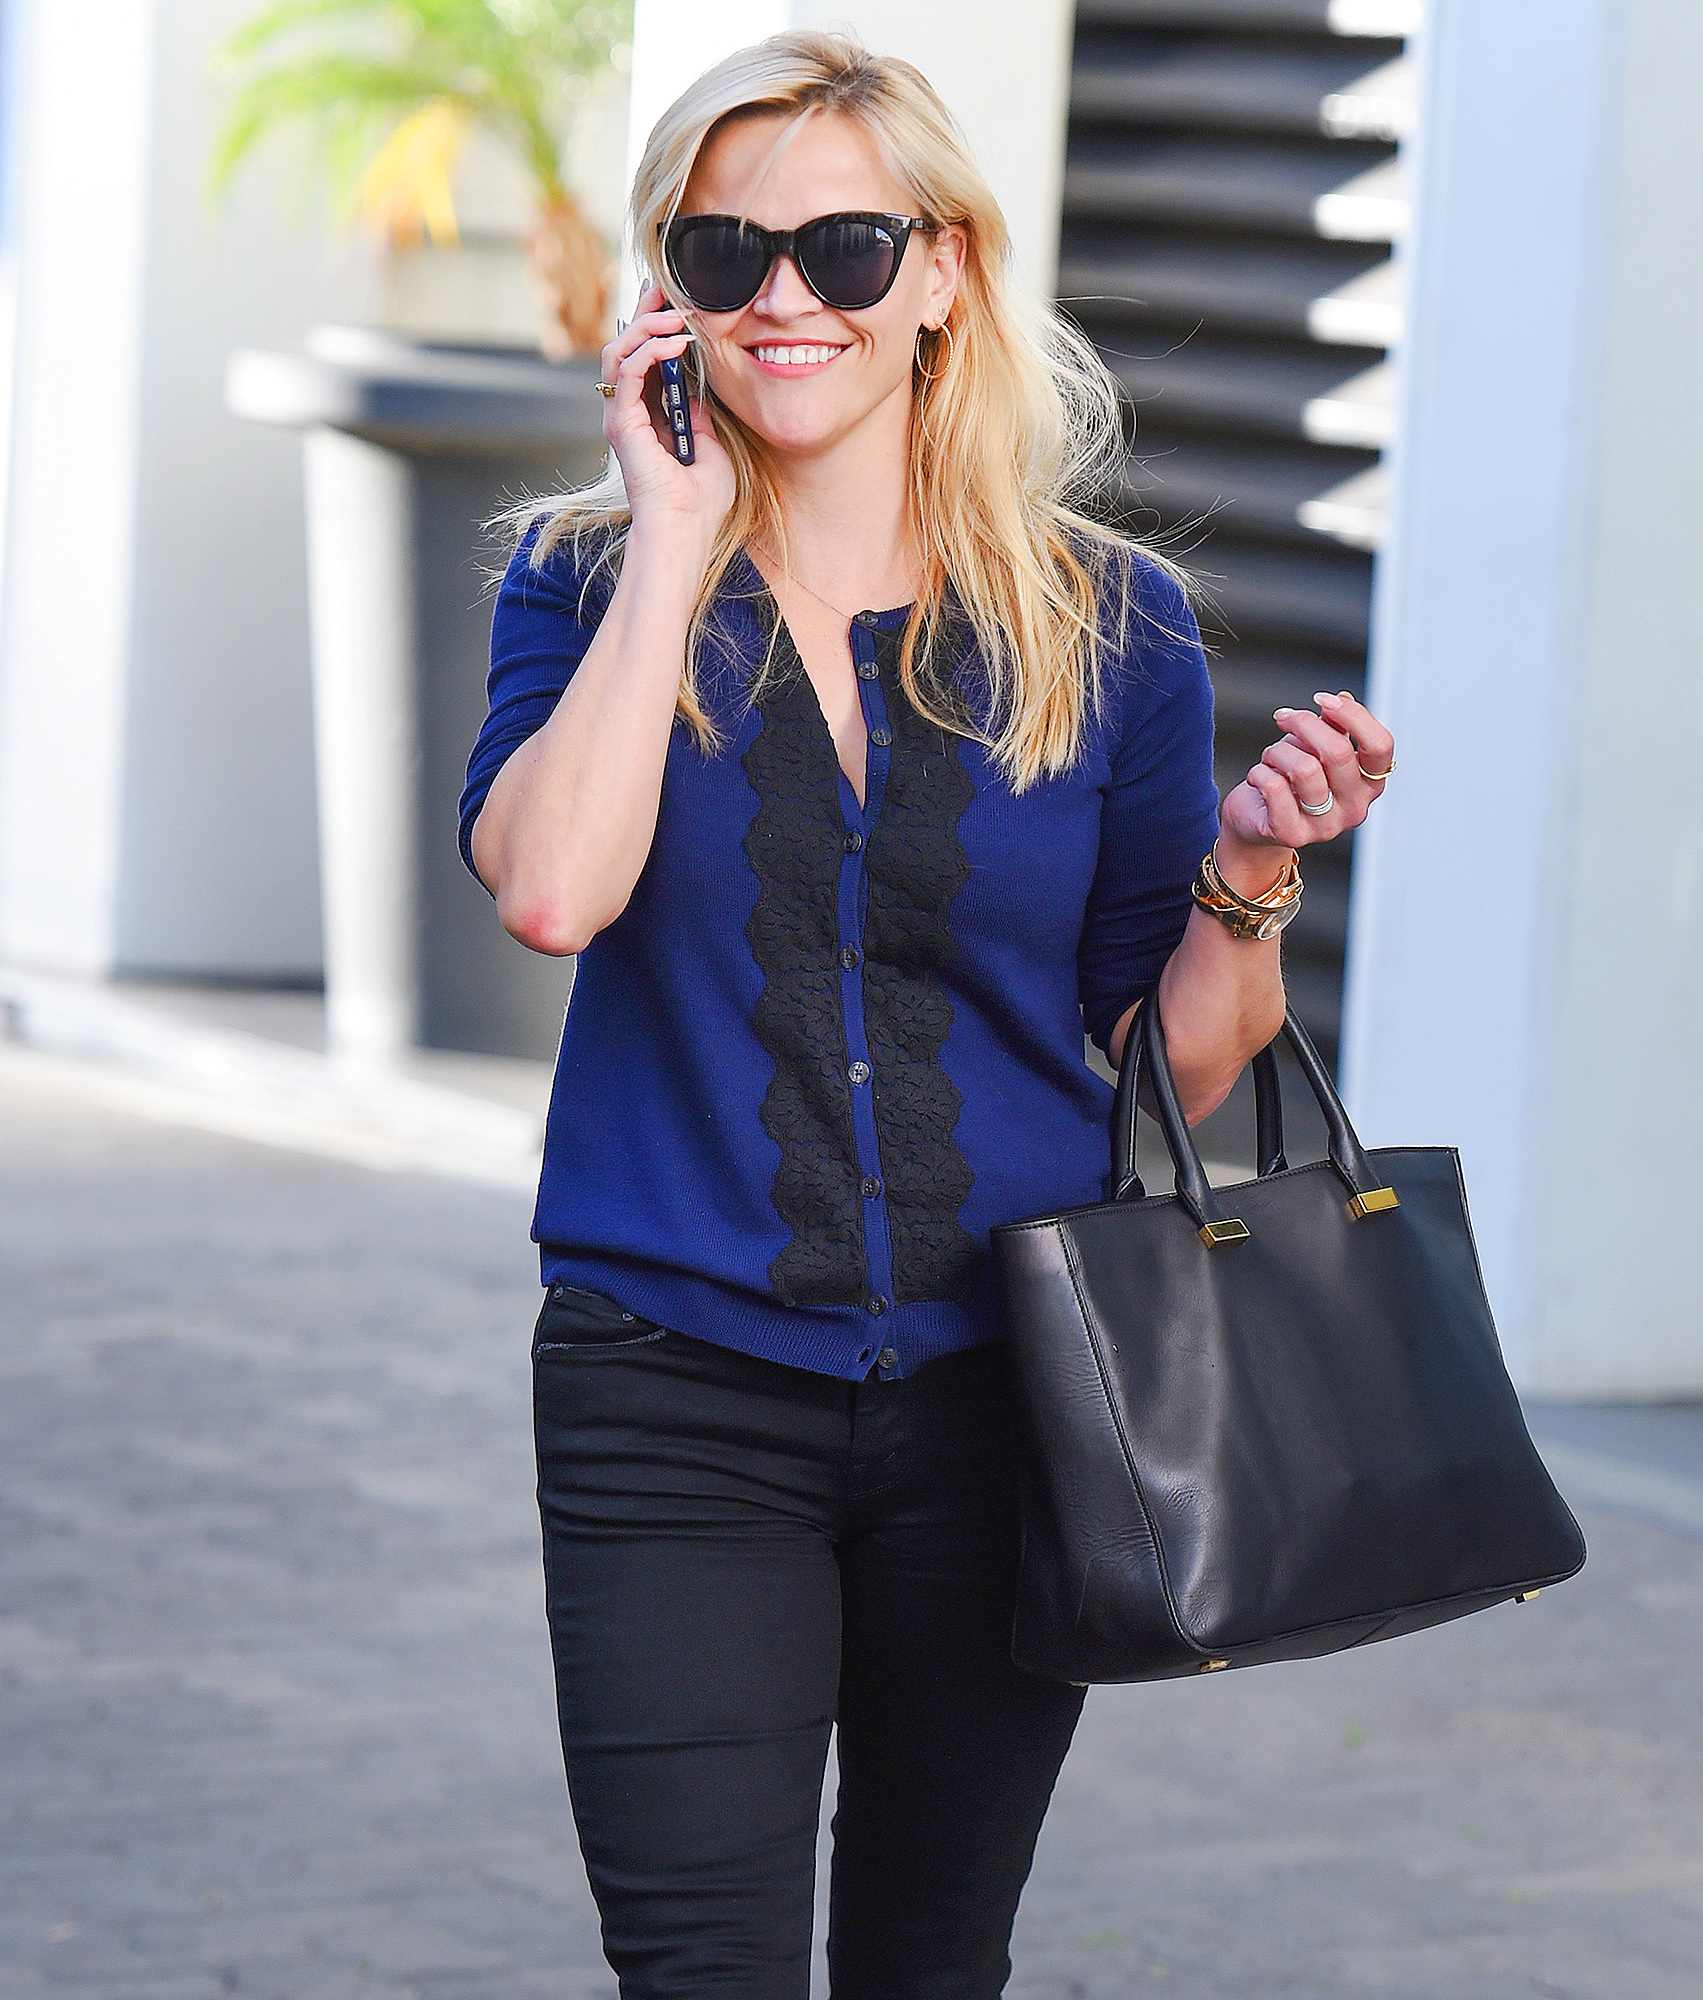 Reese Witherspoon talks on her phone out in Los Angeles